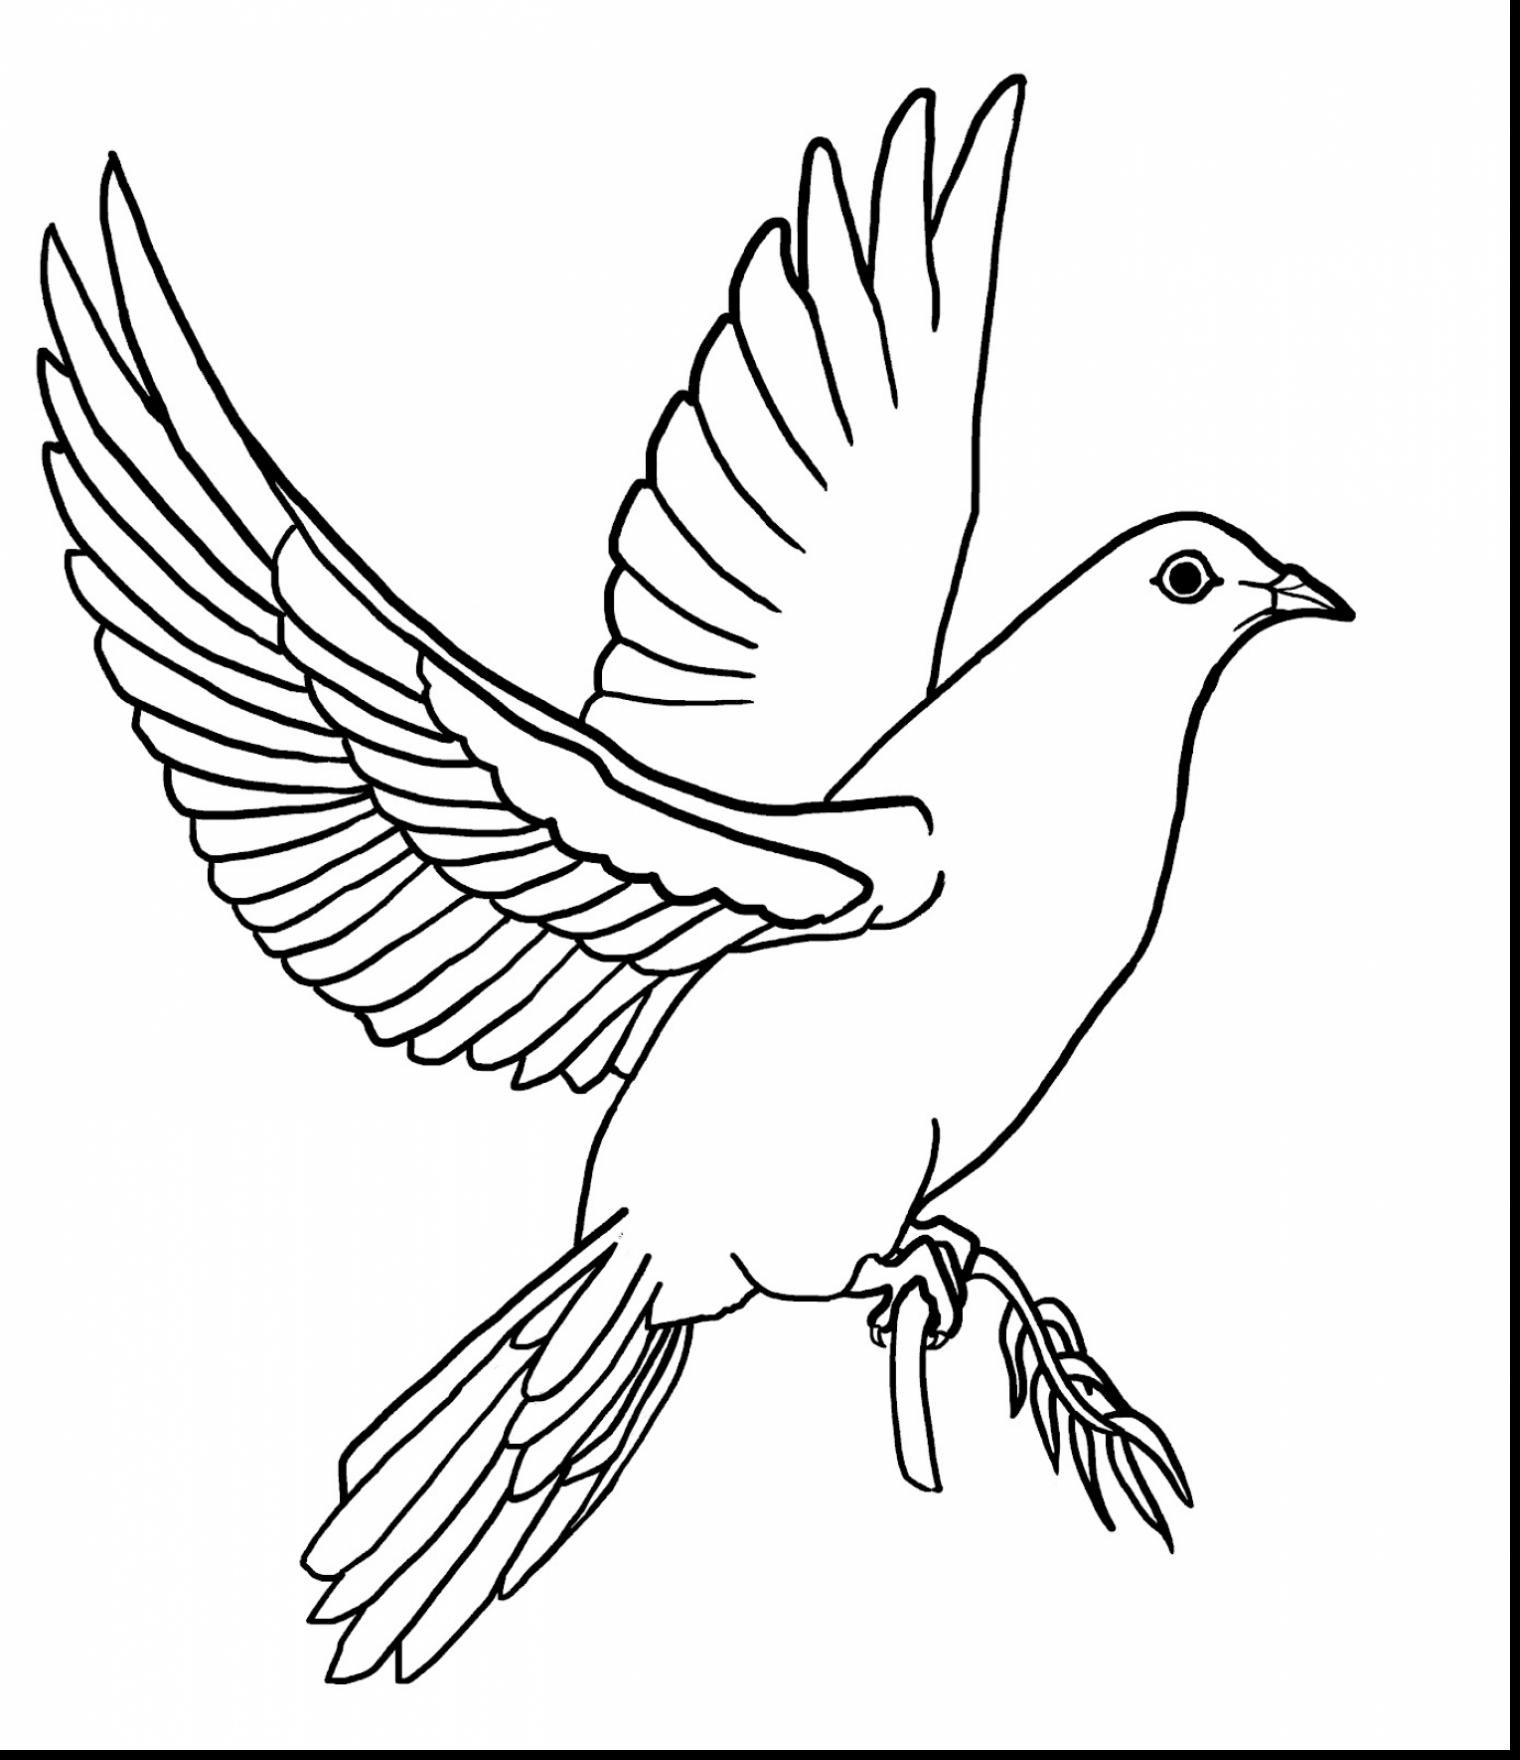 Mourning Dove clipart line drawing Page coloring holy dove pencil